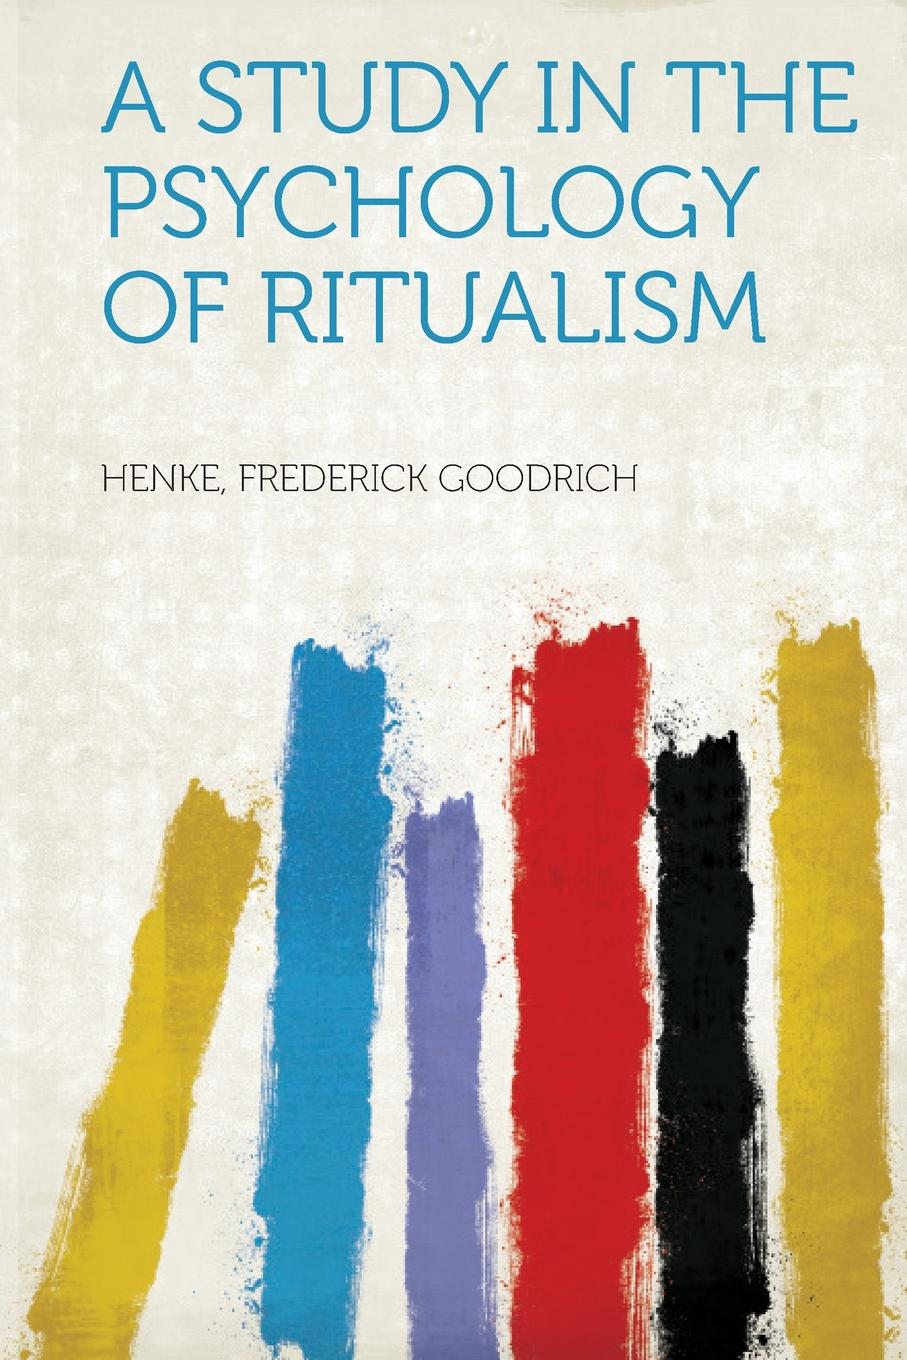 A Study in the Psychology of Ritualism